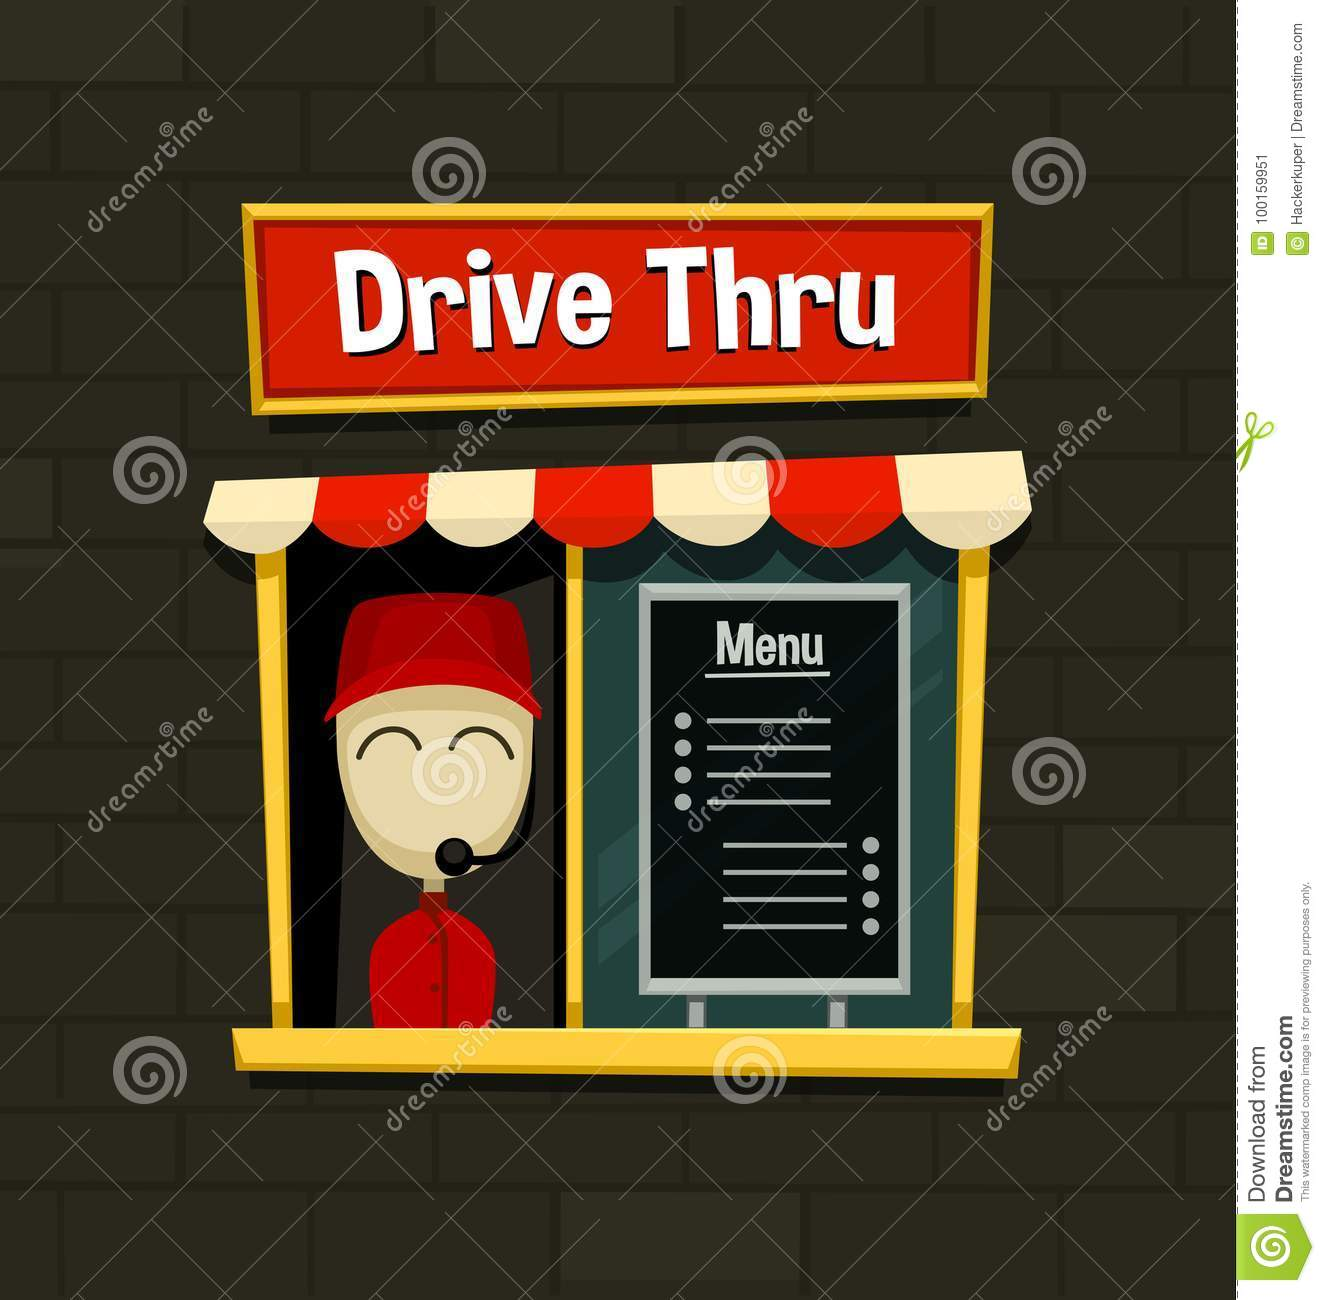 Download Vector Cartoon Drive Thru Menu Board Fast Food Business Snack Dish Quick Simple Idea With